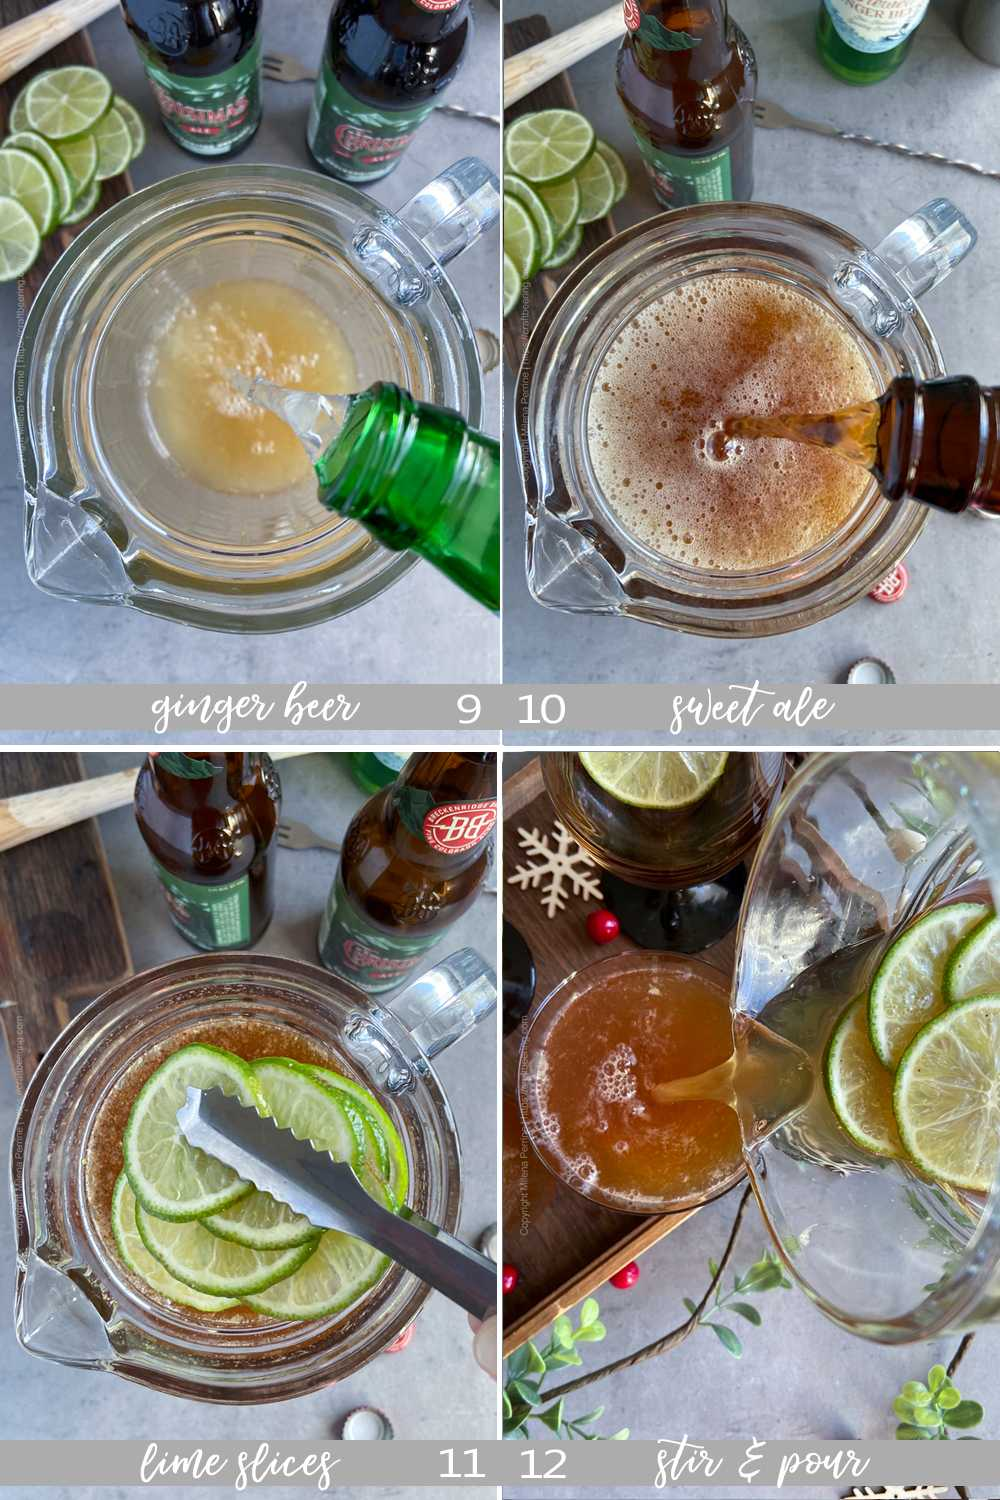 How to make beer punch with ginger beer and spiced ale - part 3